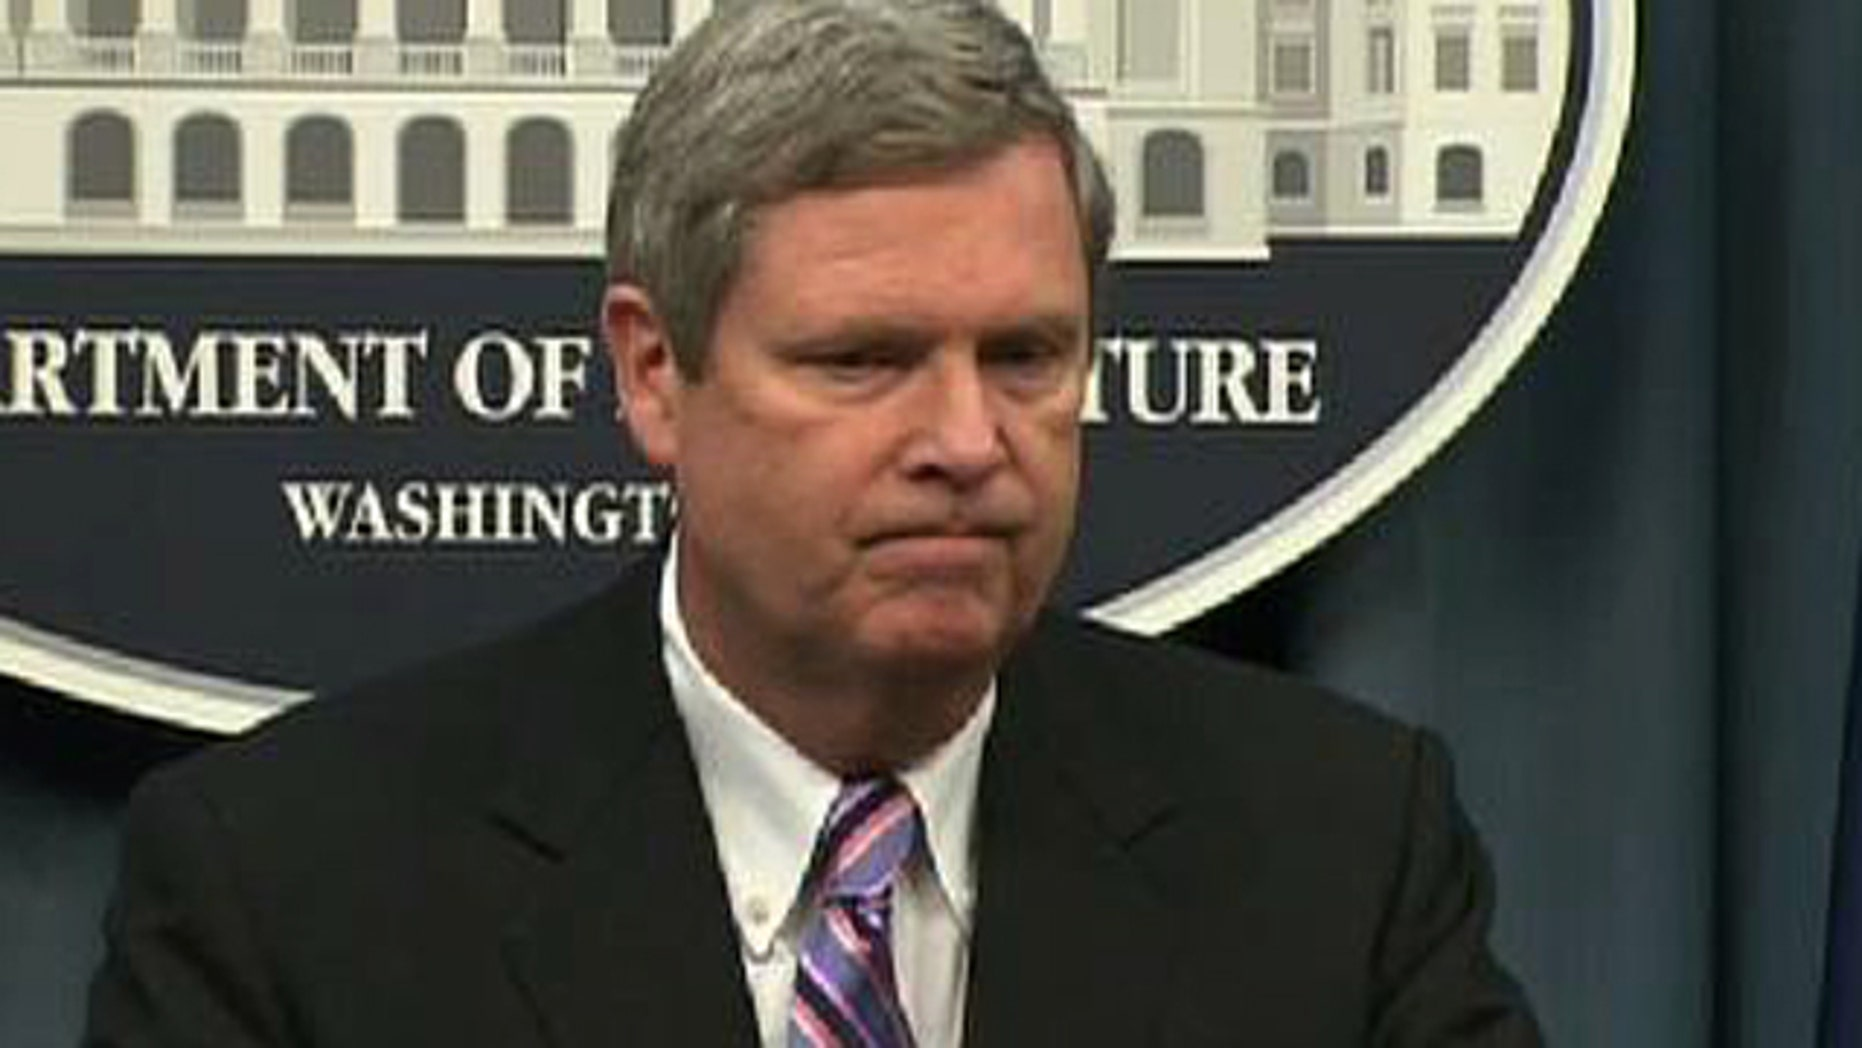 July 21, 2010: Agriculture Secretary Tom Vilsack speaks to reporters about the controversial ouster of a state-level official over racial remarks.